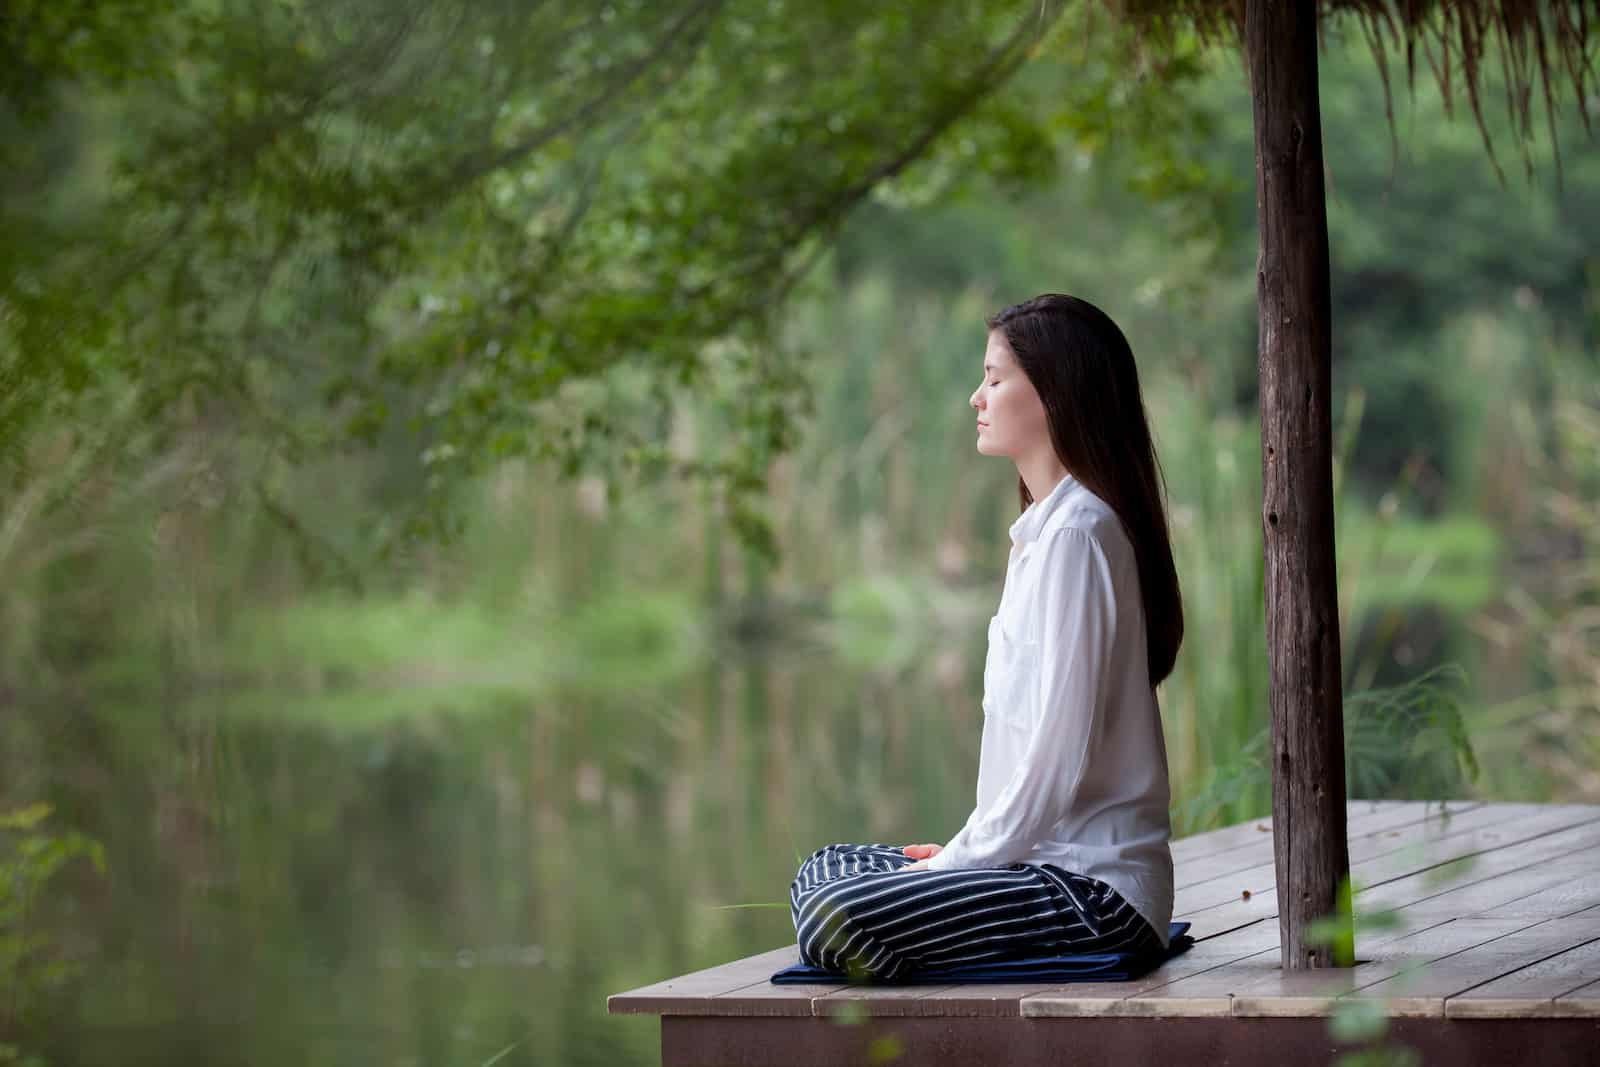 Mindfulness Meditation Podcast · Can you return to the breath with care? · Guided Meditation led by psychotherapist Danny Ford.jpg